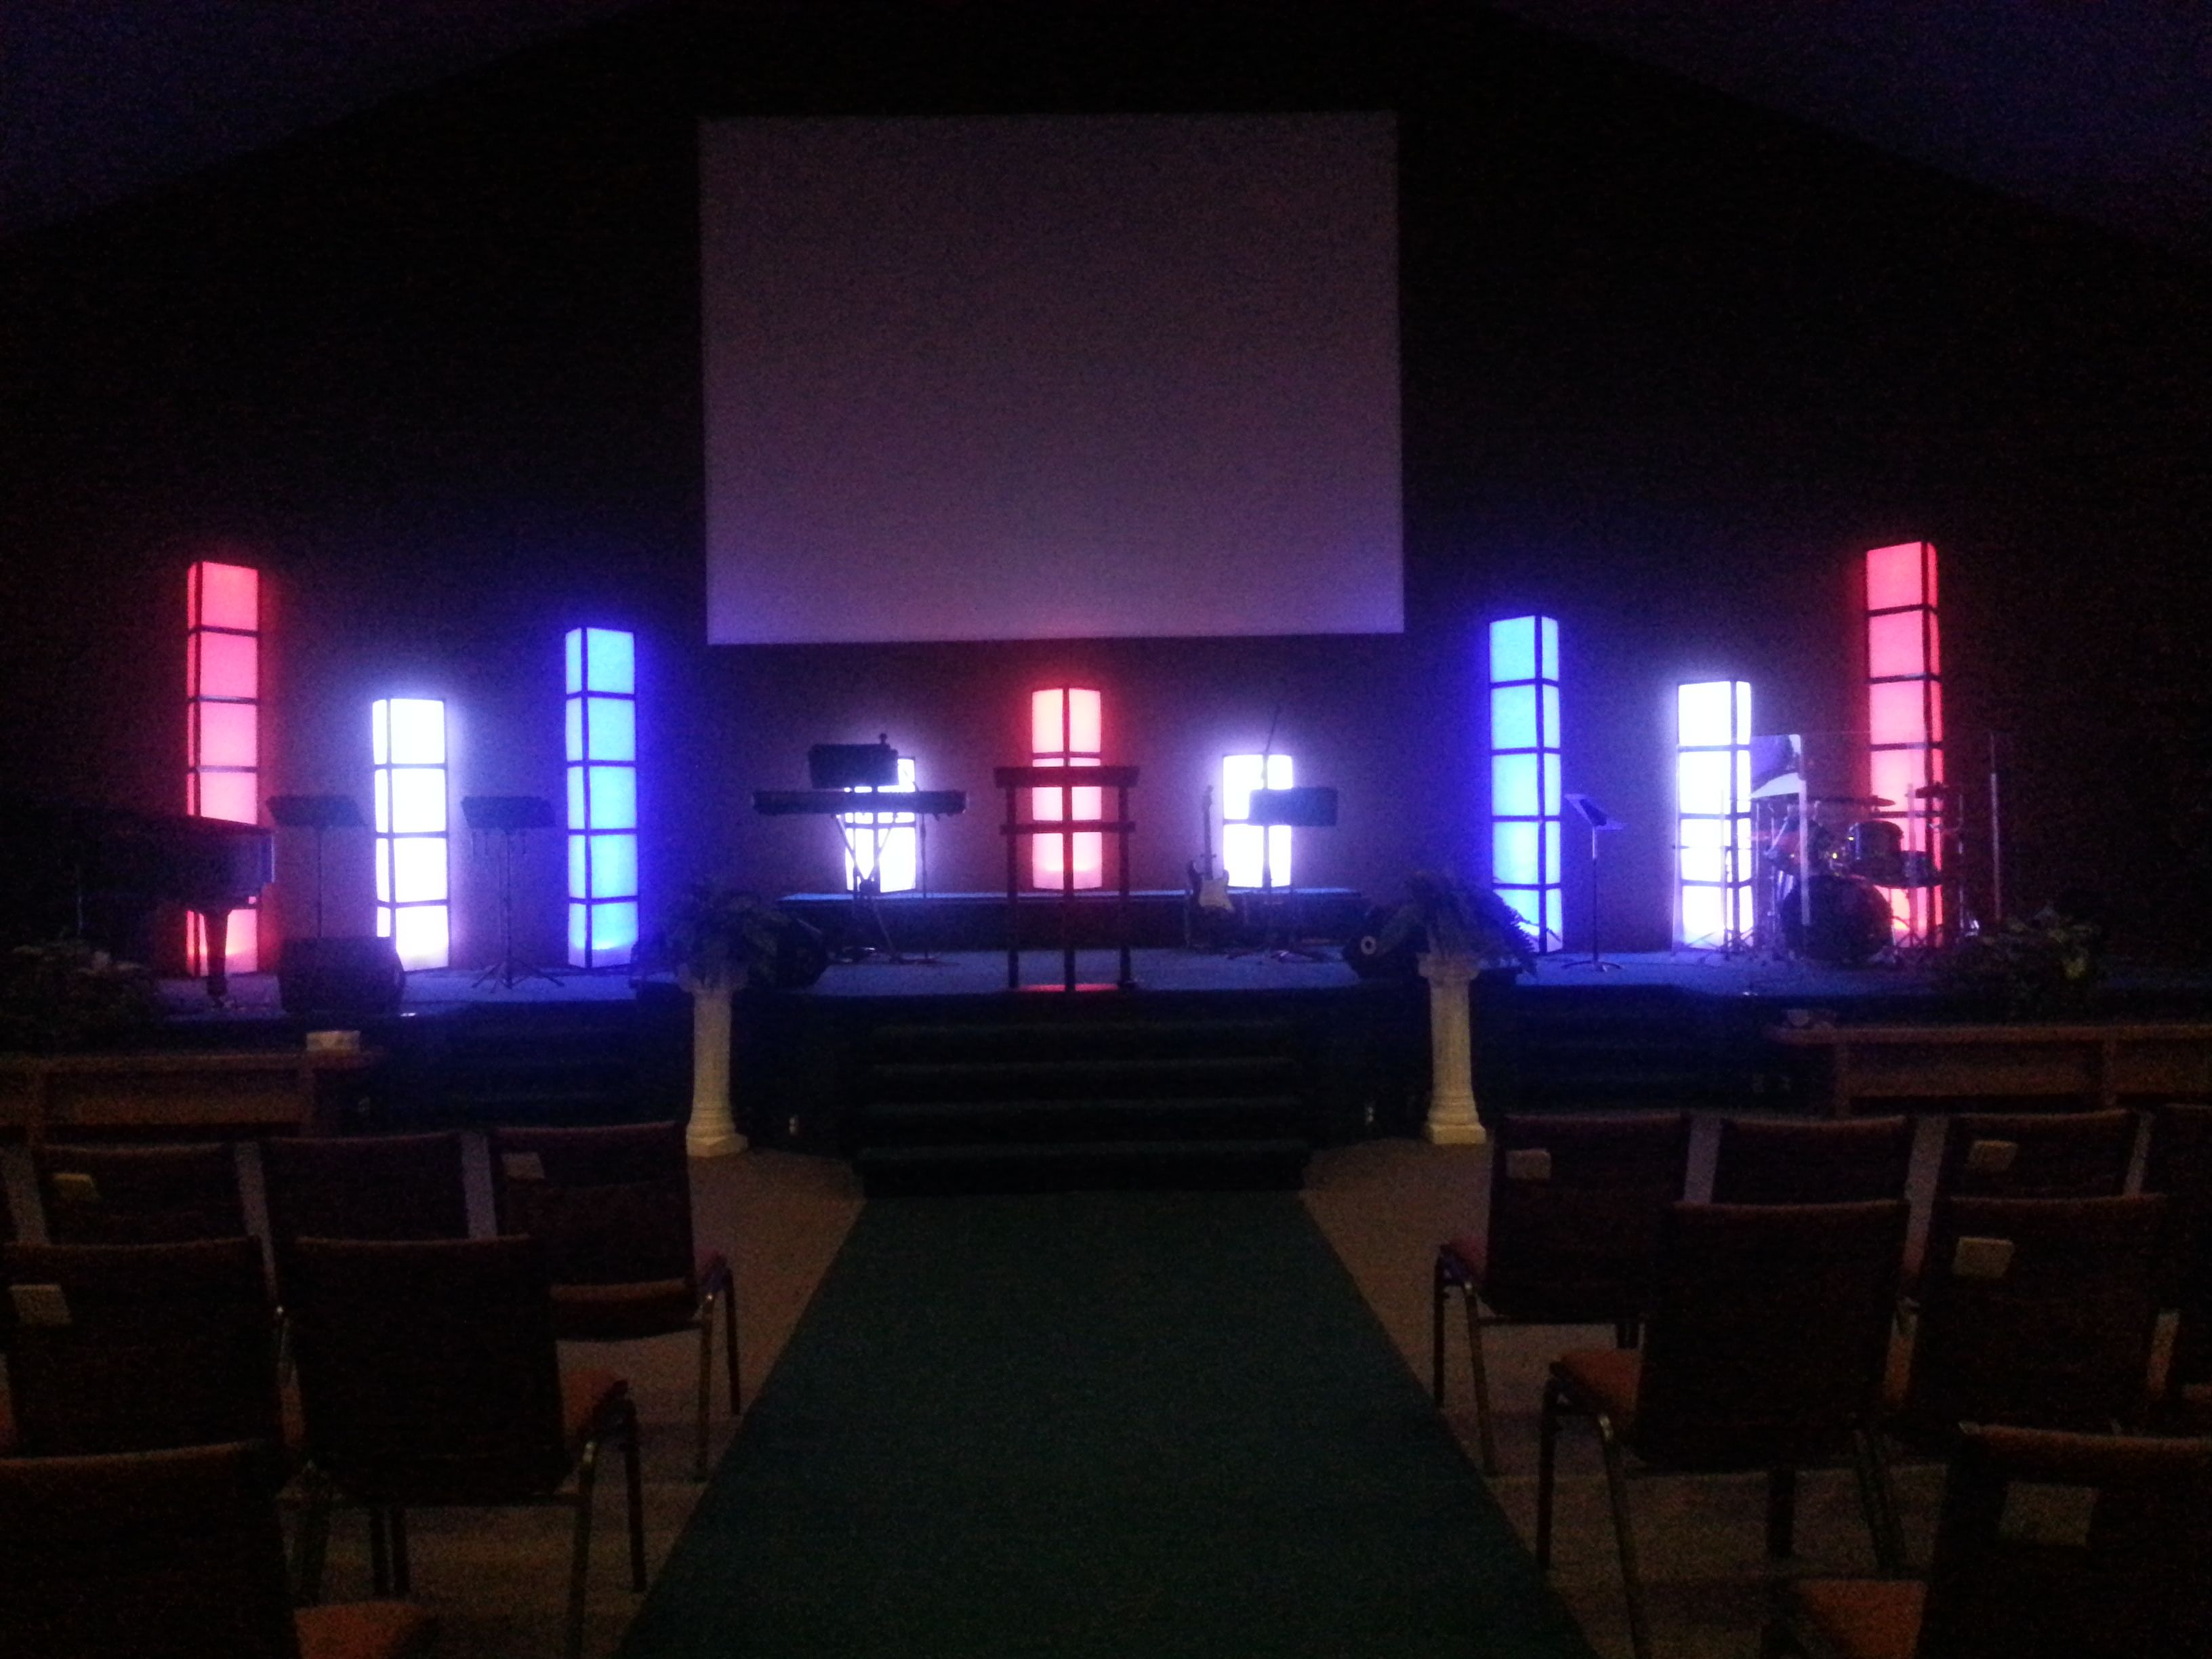 cheap church stage design ideas leave a reply cancel reply